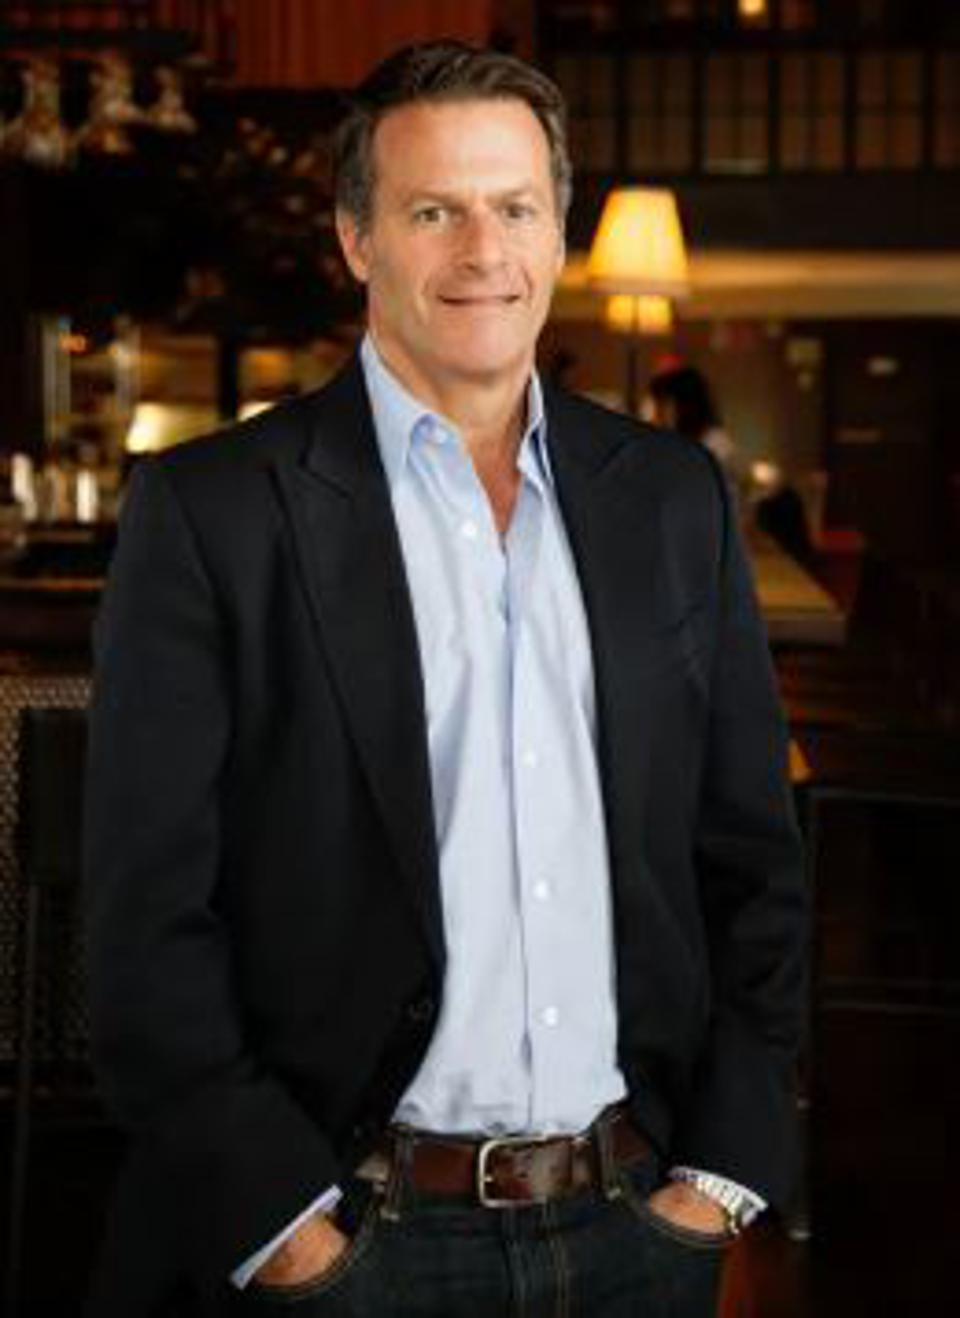 Scott Gerber has become one of the hospitality industry's most recognized people.